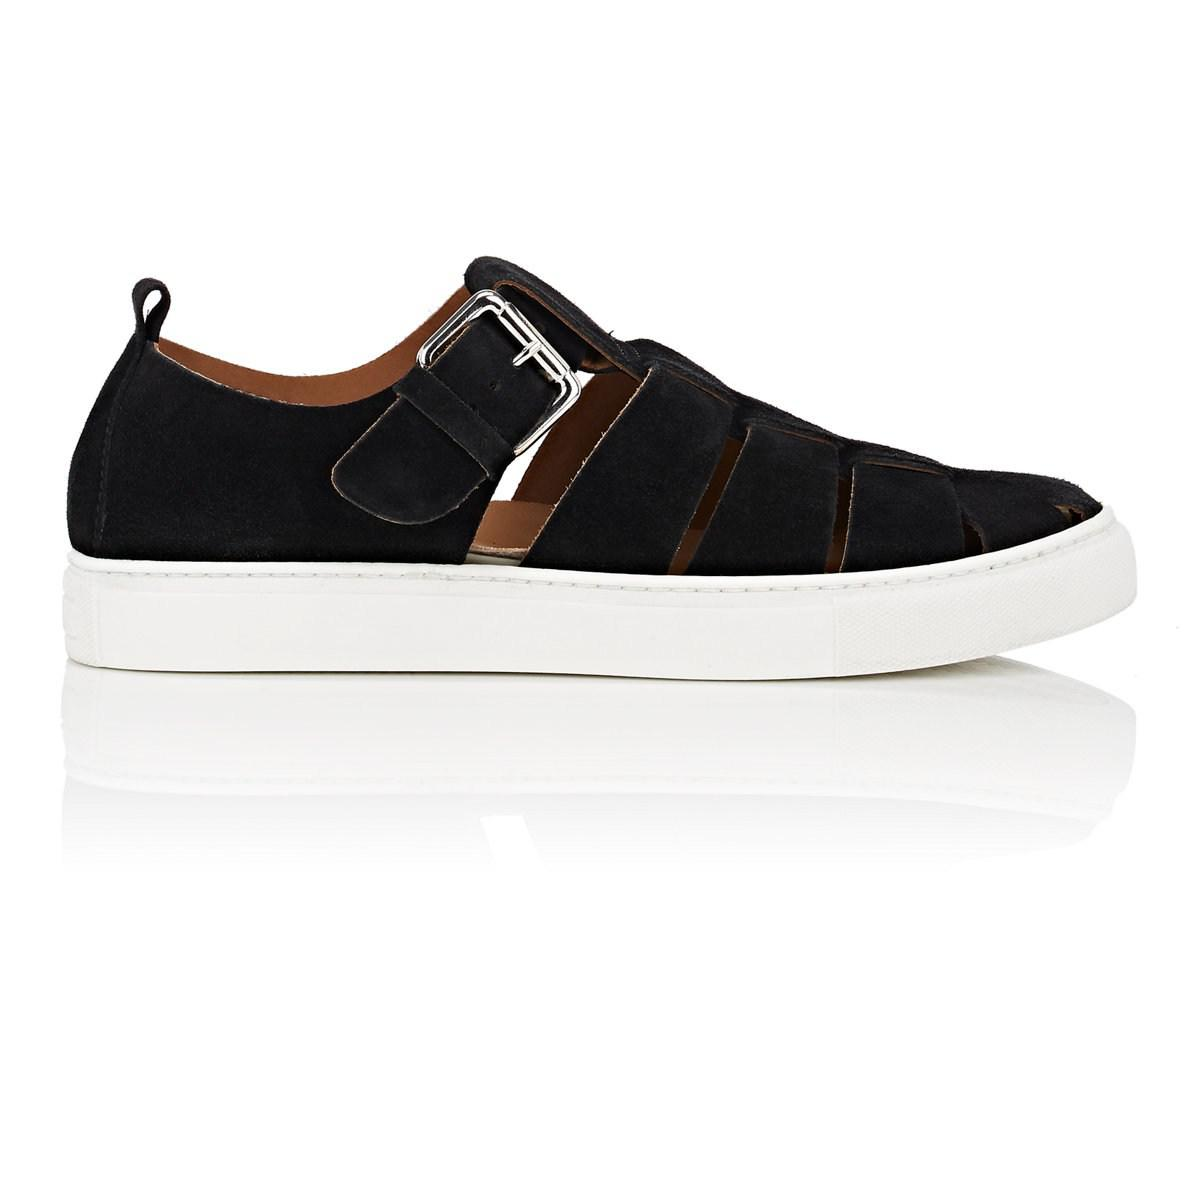 Mens Nubuck Fisherman Sneakers Barneys New York 5rDg0